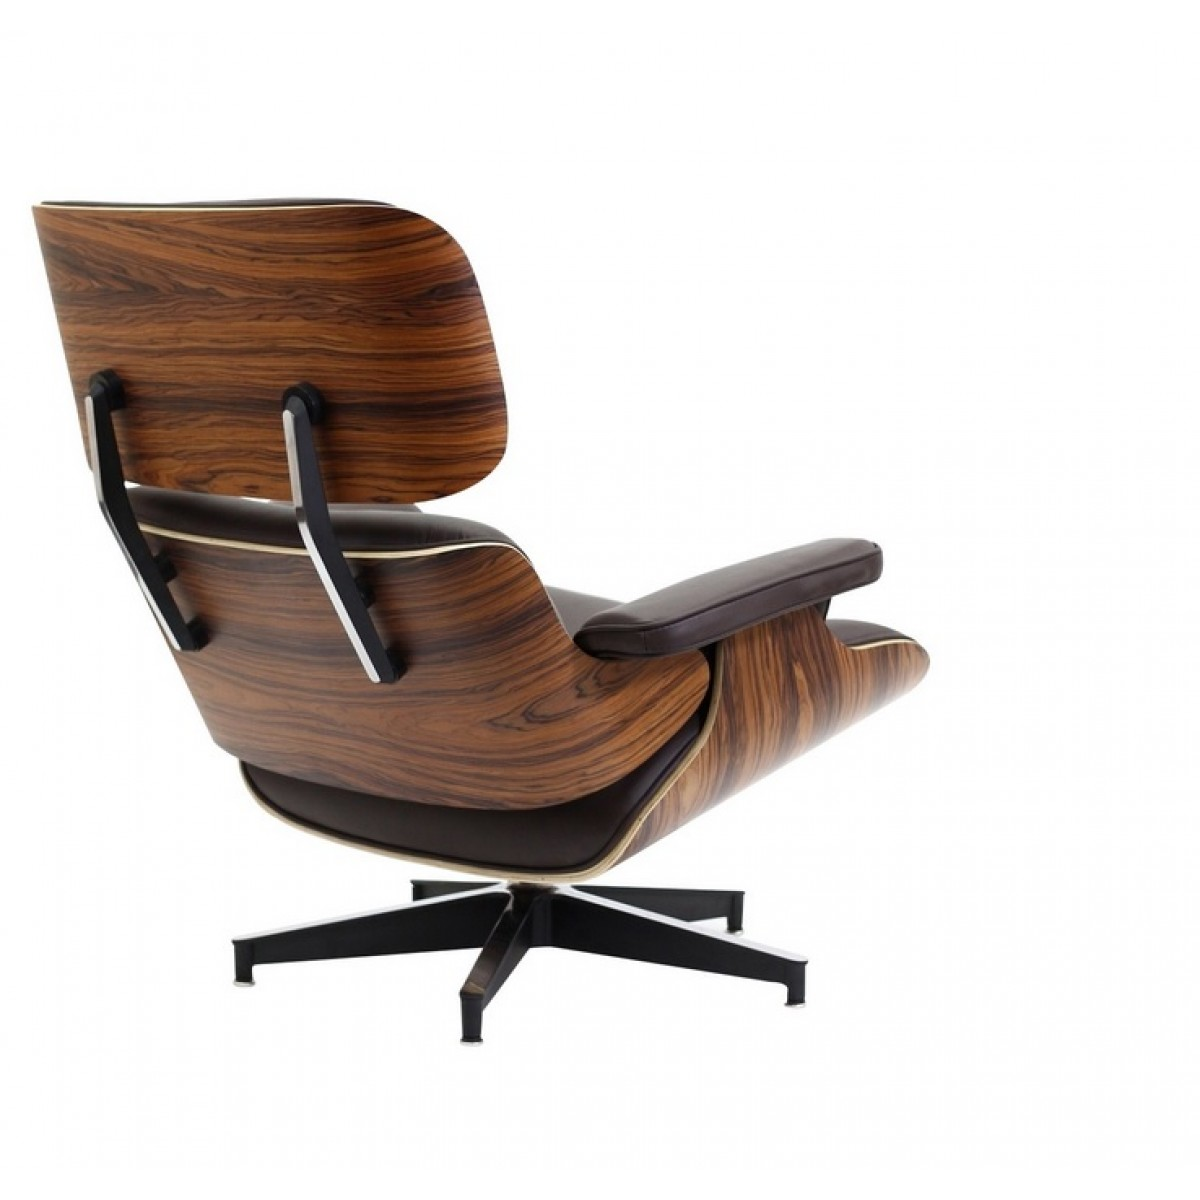 Style Lounge Chair and Ottoman Brown Leather Walnut Wood